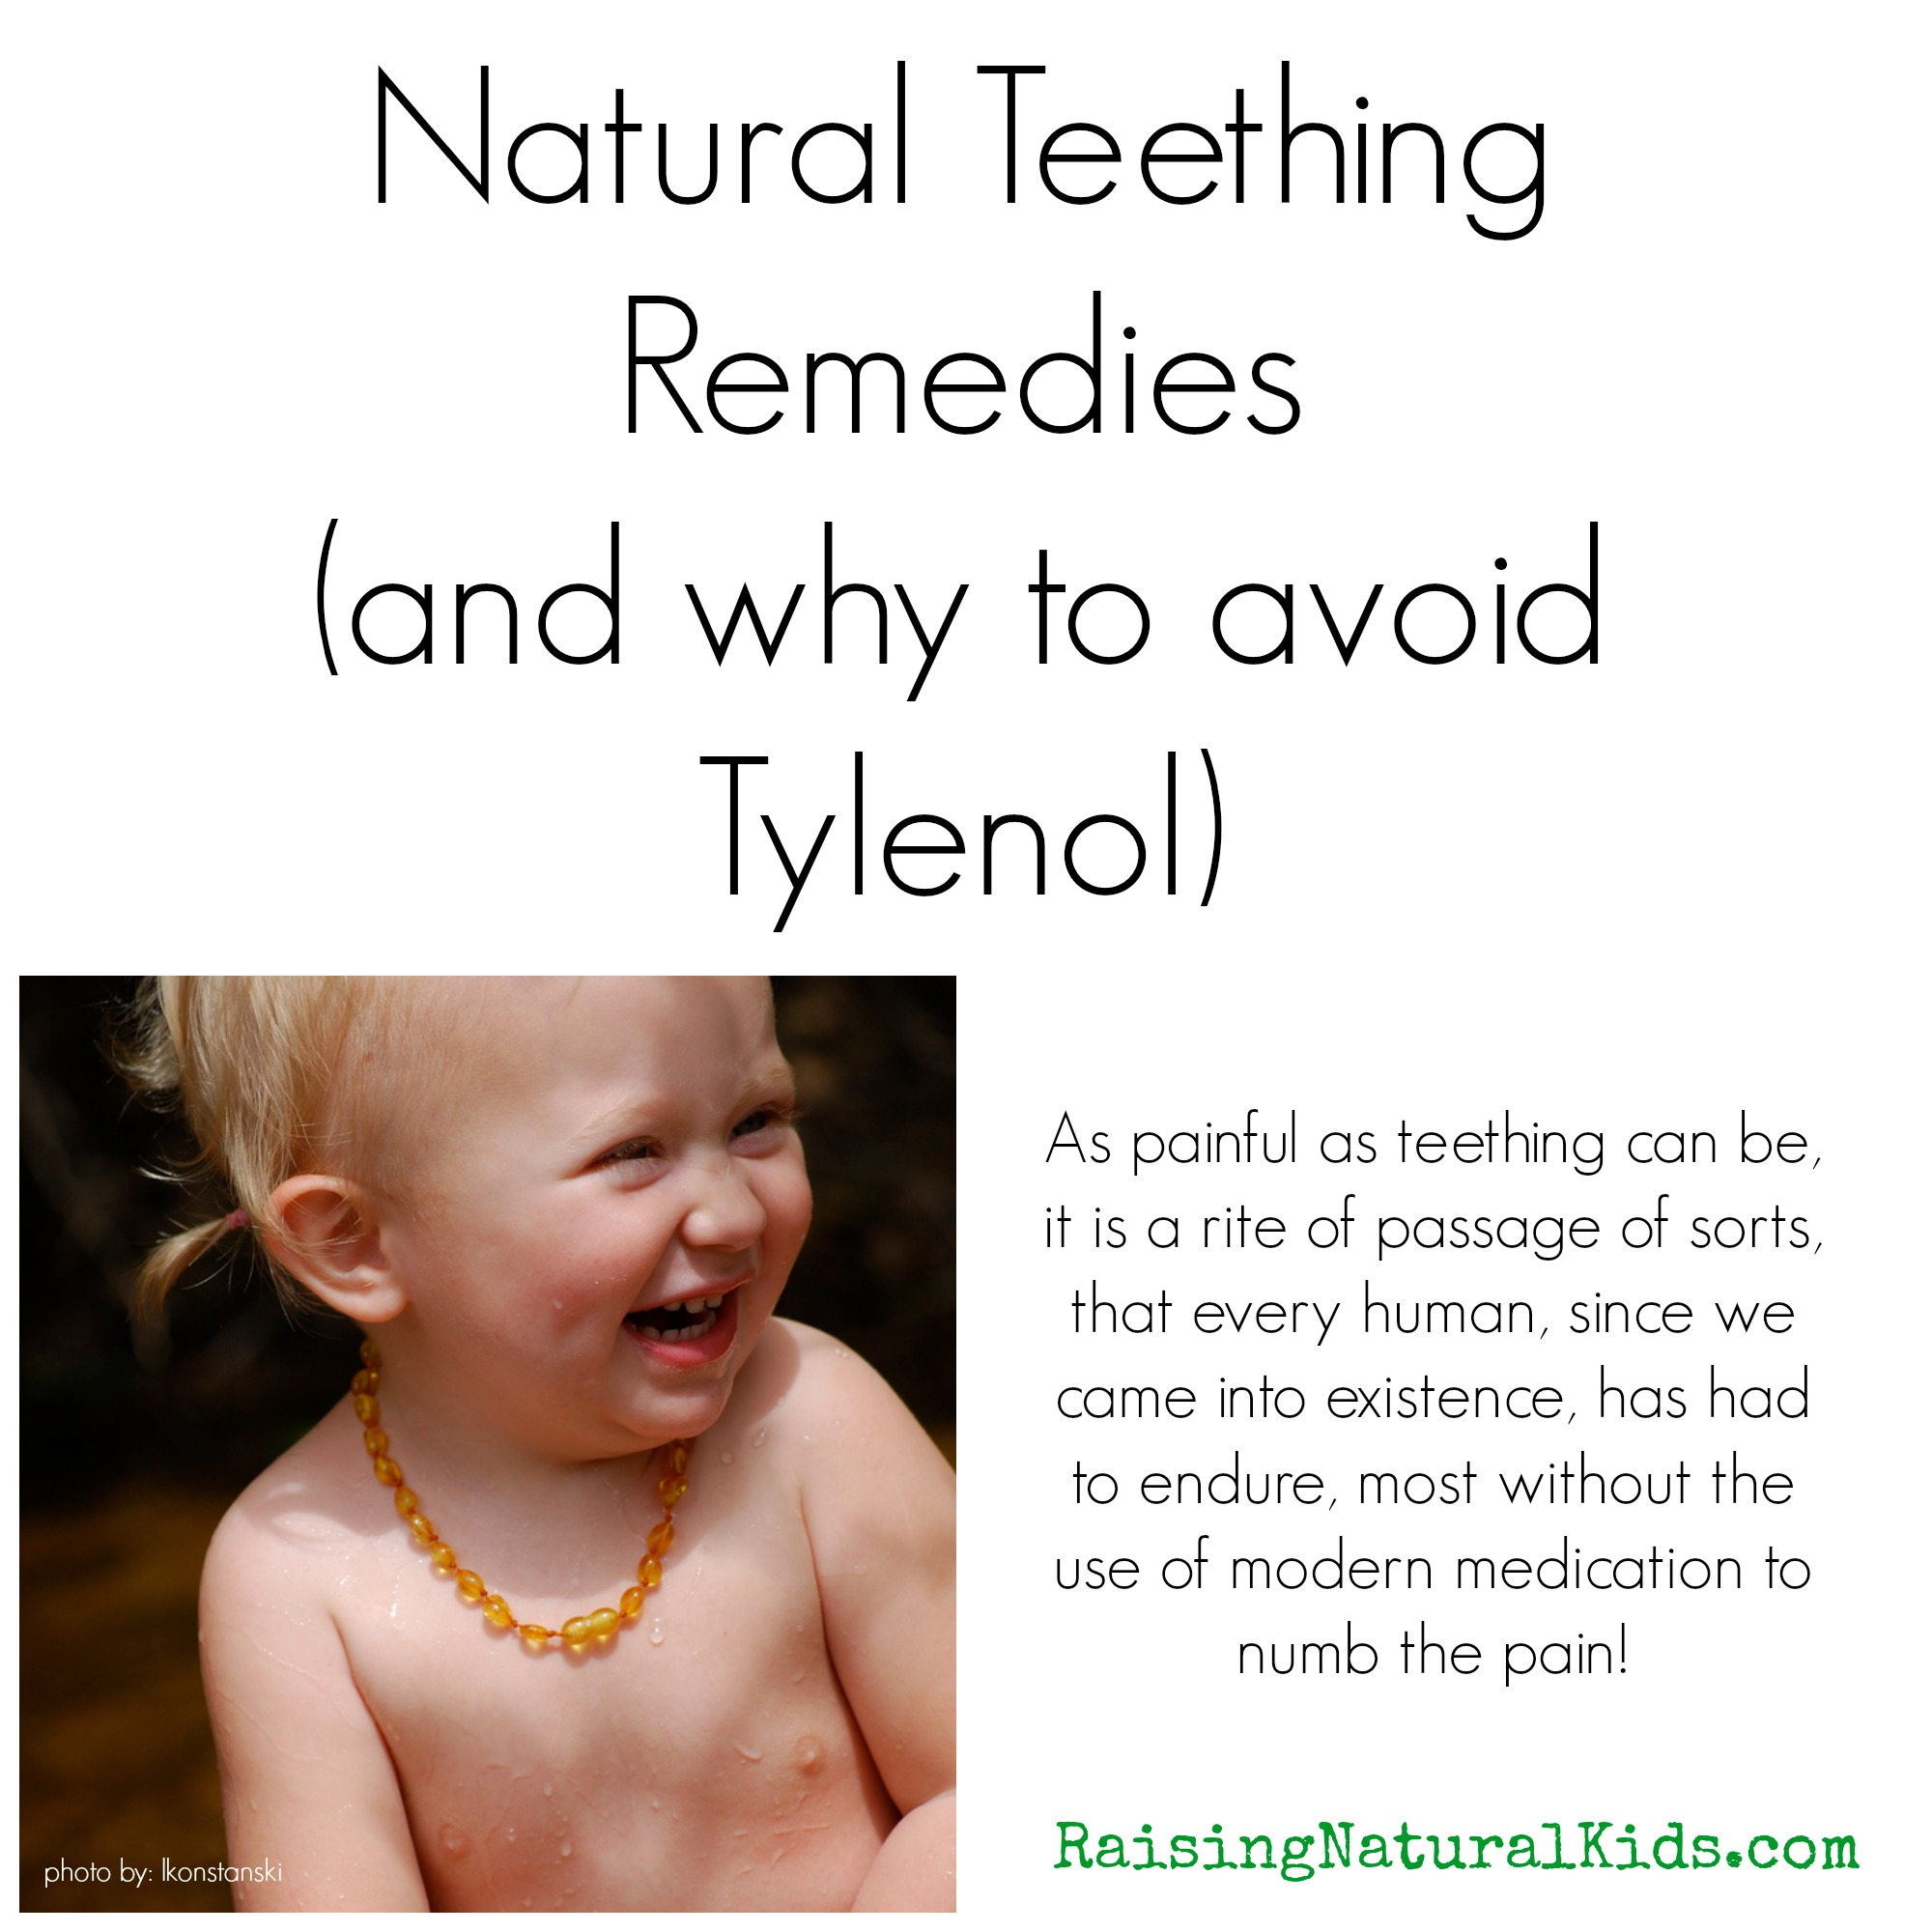 How To Help Ease The Pain Of Teething Naturally (And What